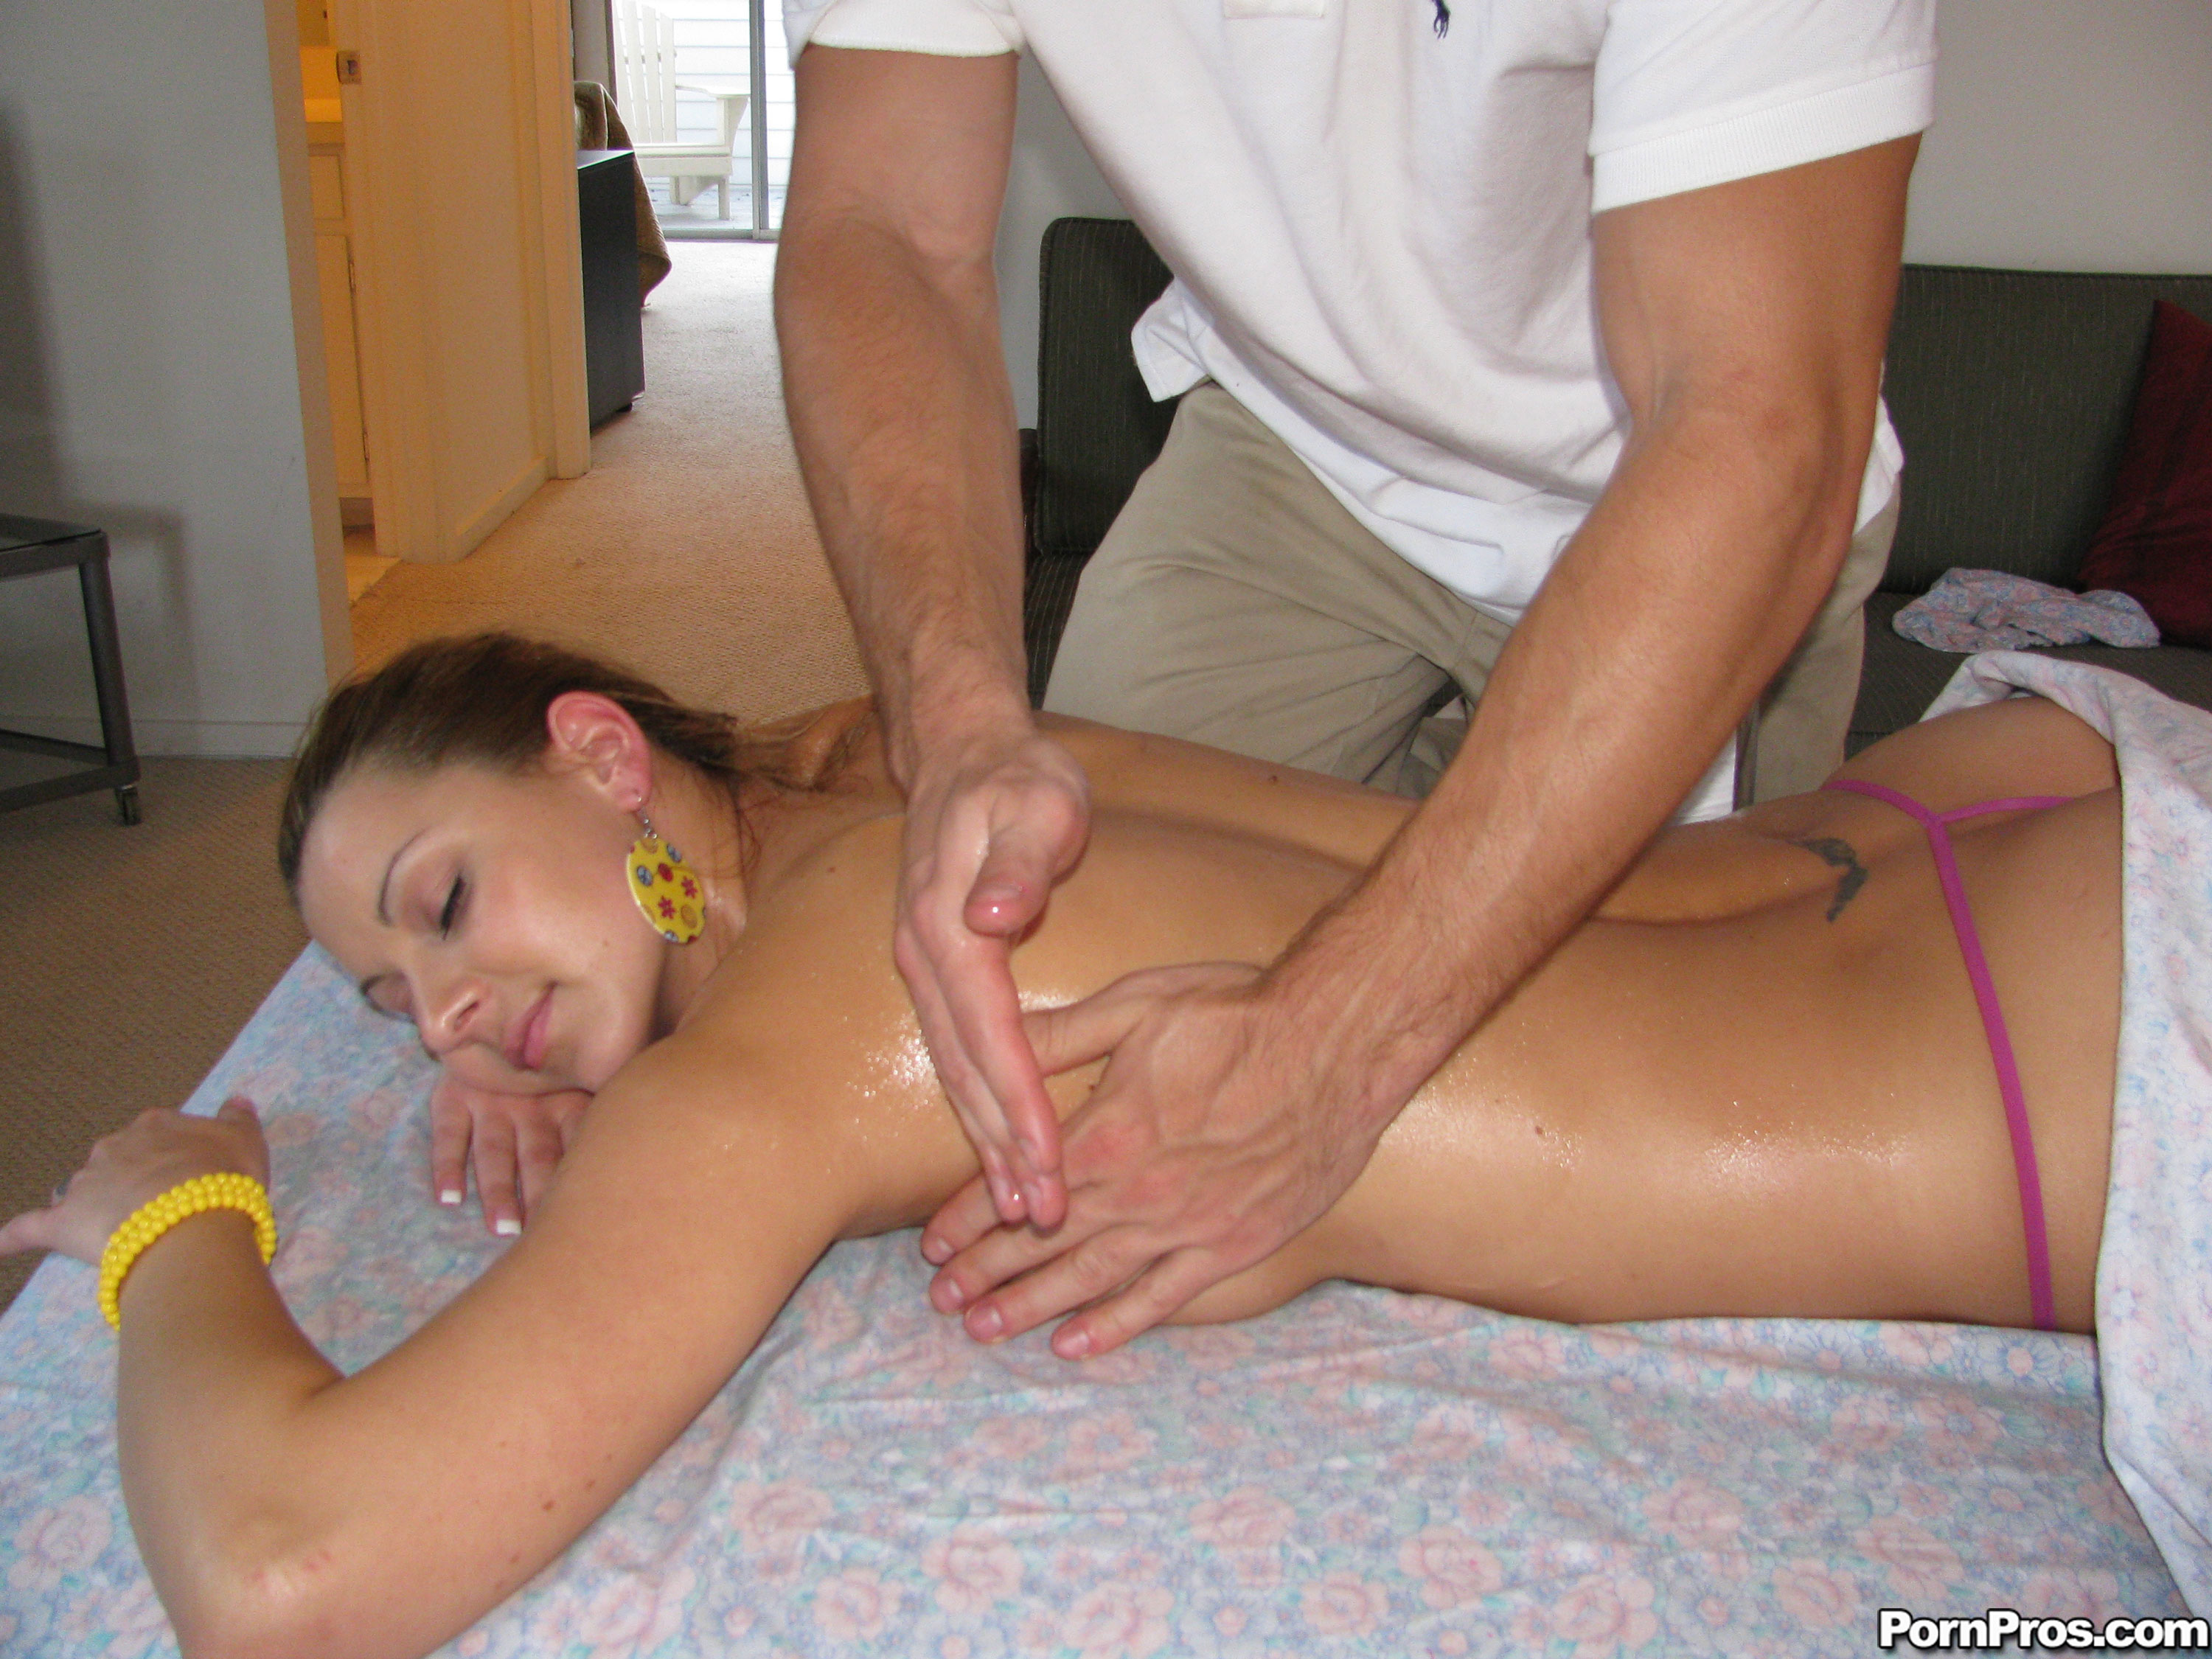 Cindy hope massage creep porn images